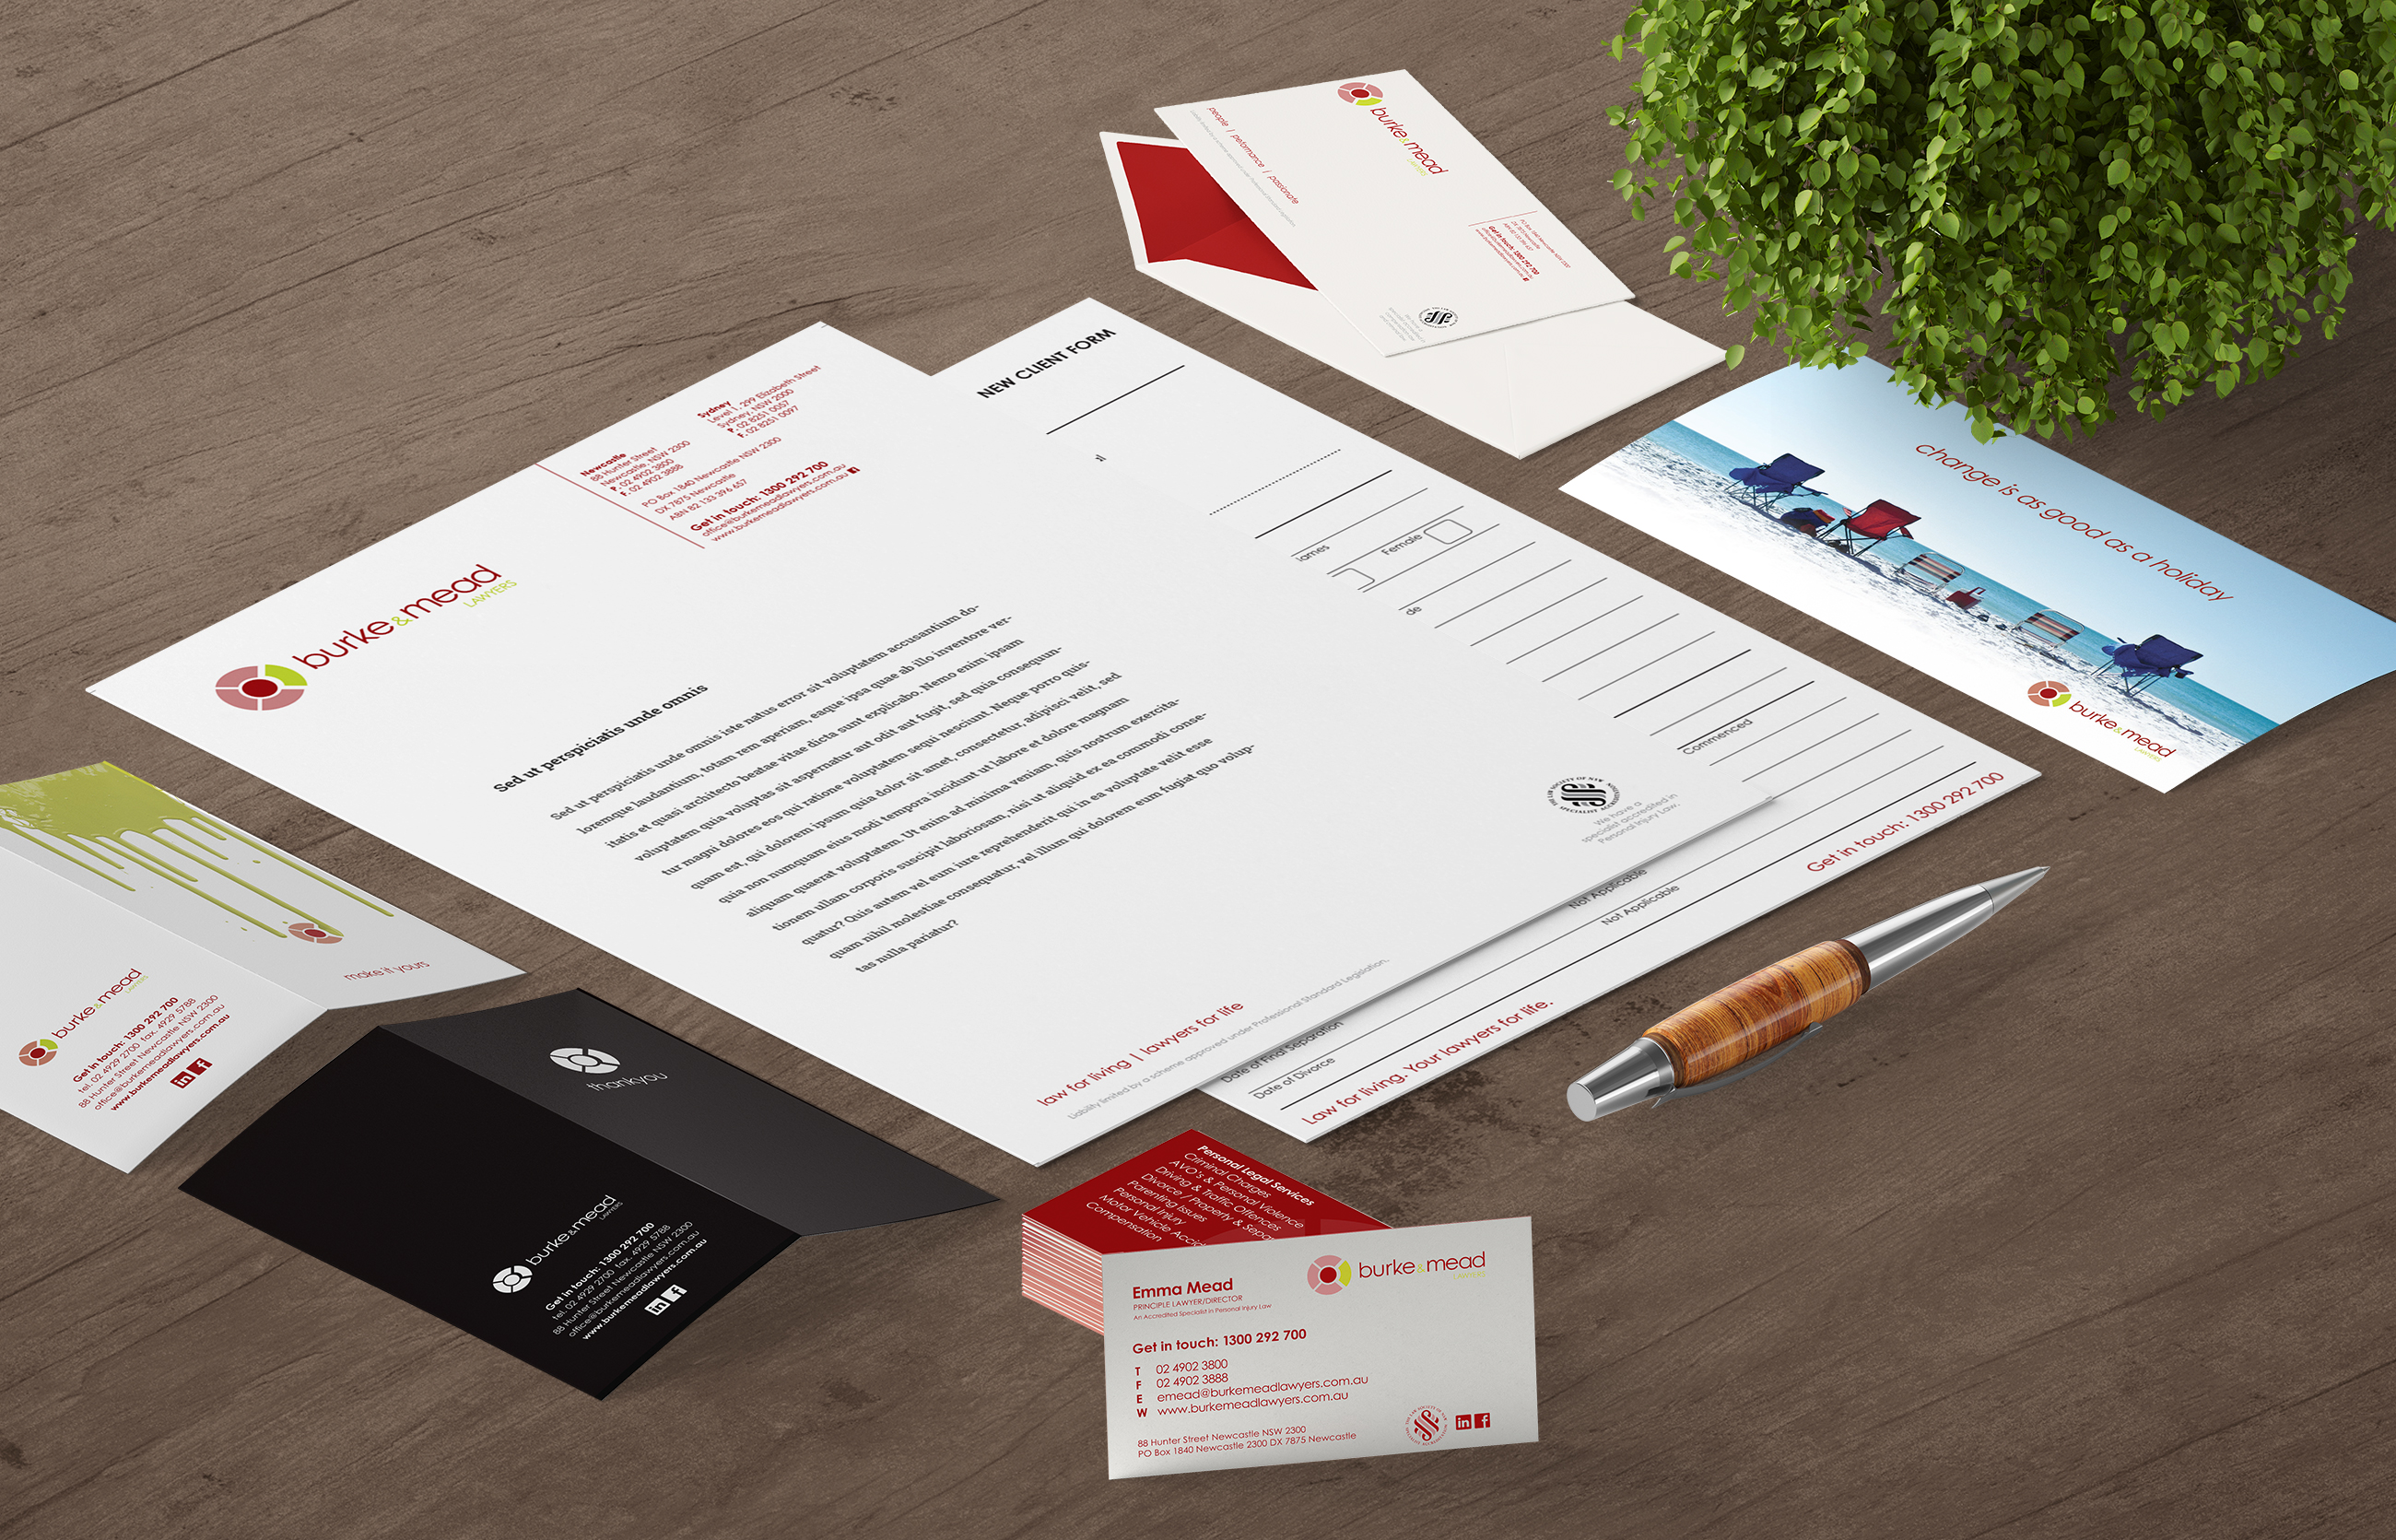 Burke & Mead Stationery